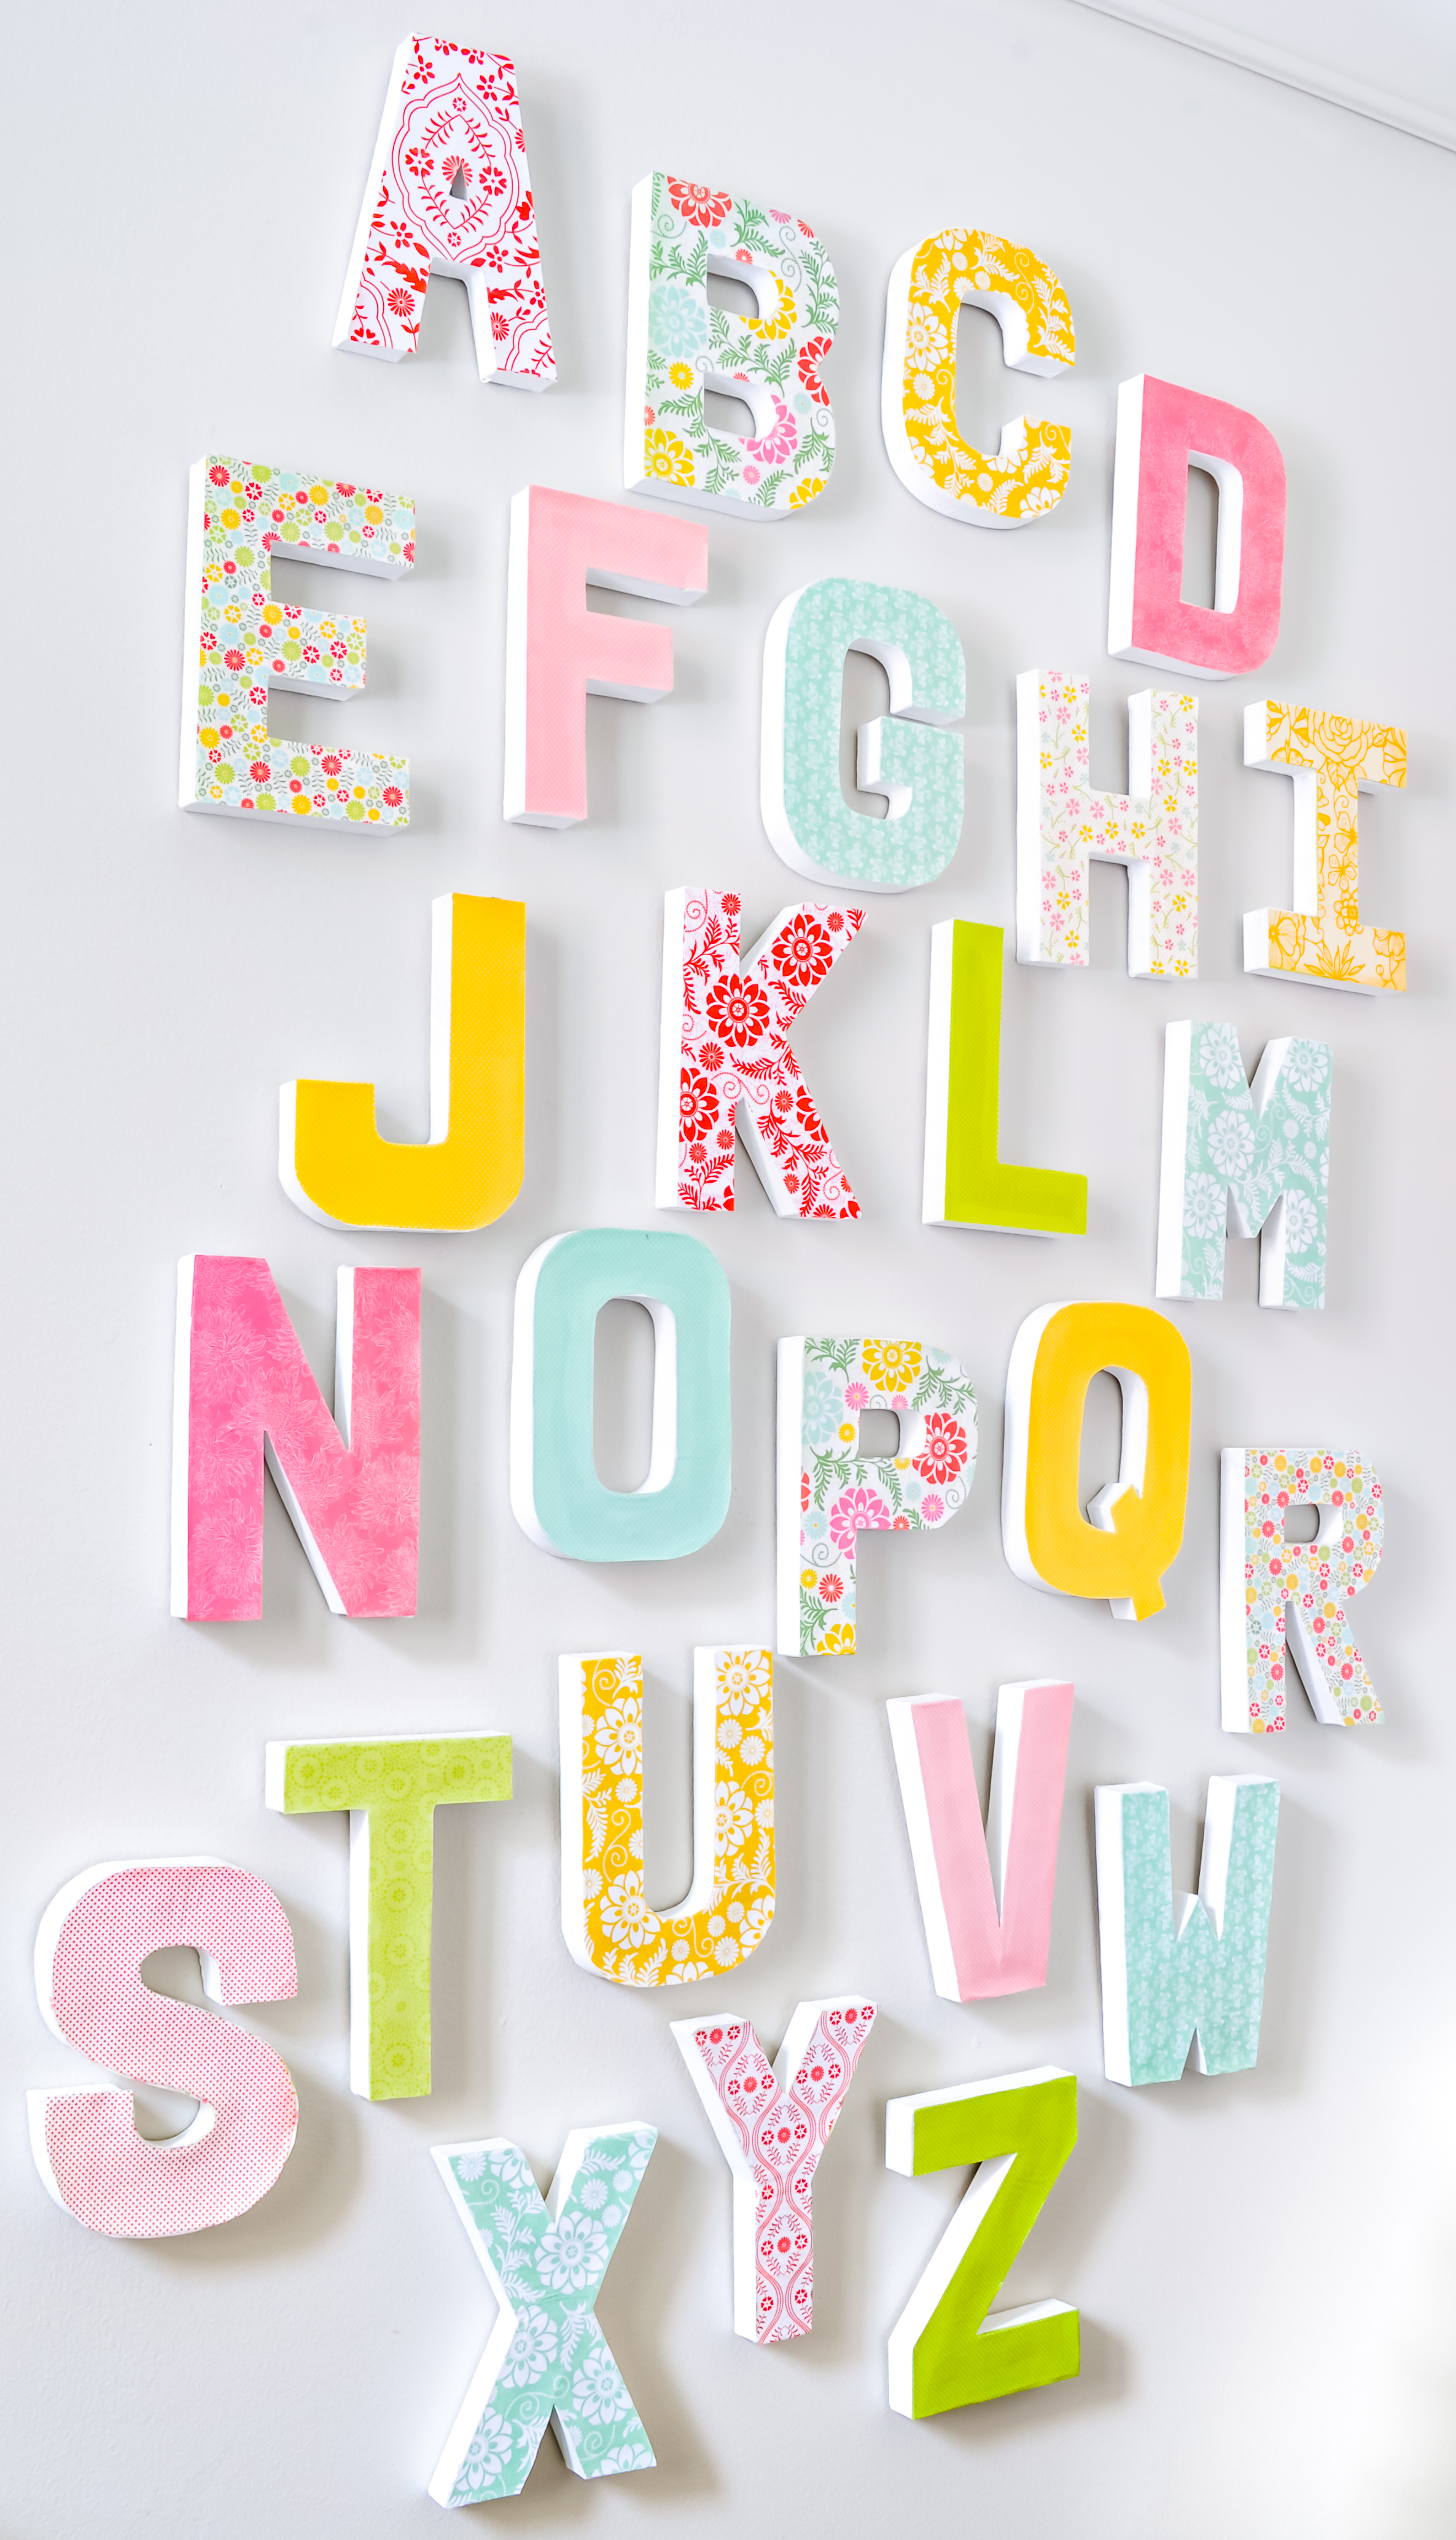 How To Make Large Letters For Wall Decor   These Diy Letters Require S  Simple Crafting